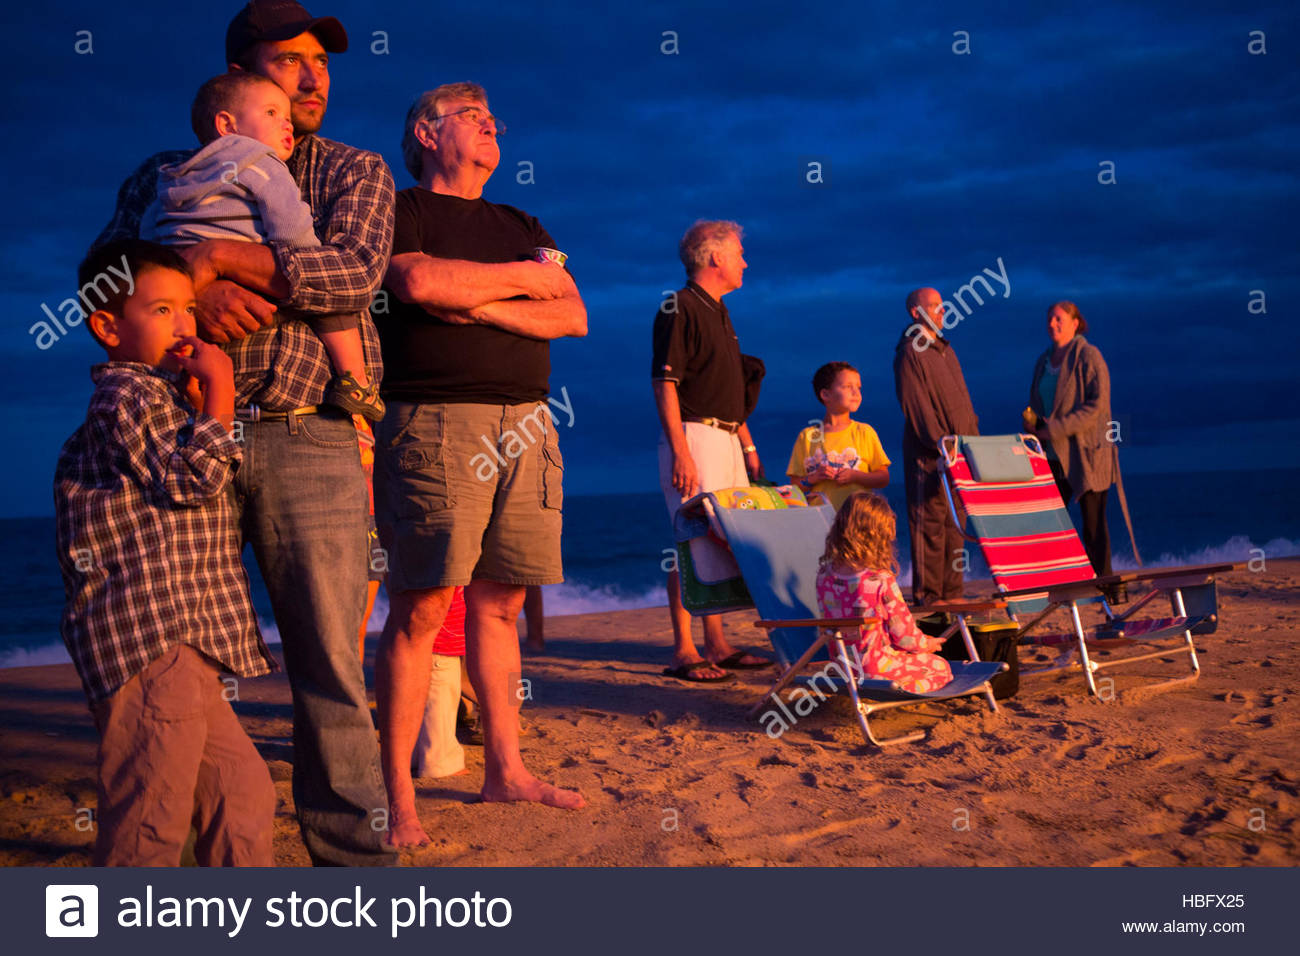 Onlookers enjoy a bonfire on Nauset Beach. - Stock Image